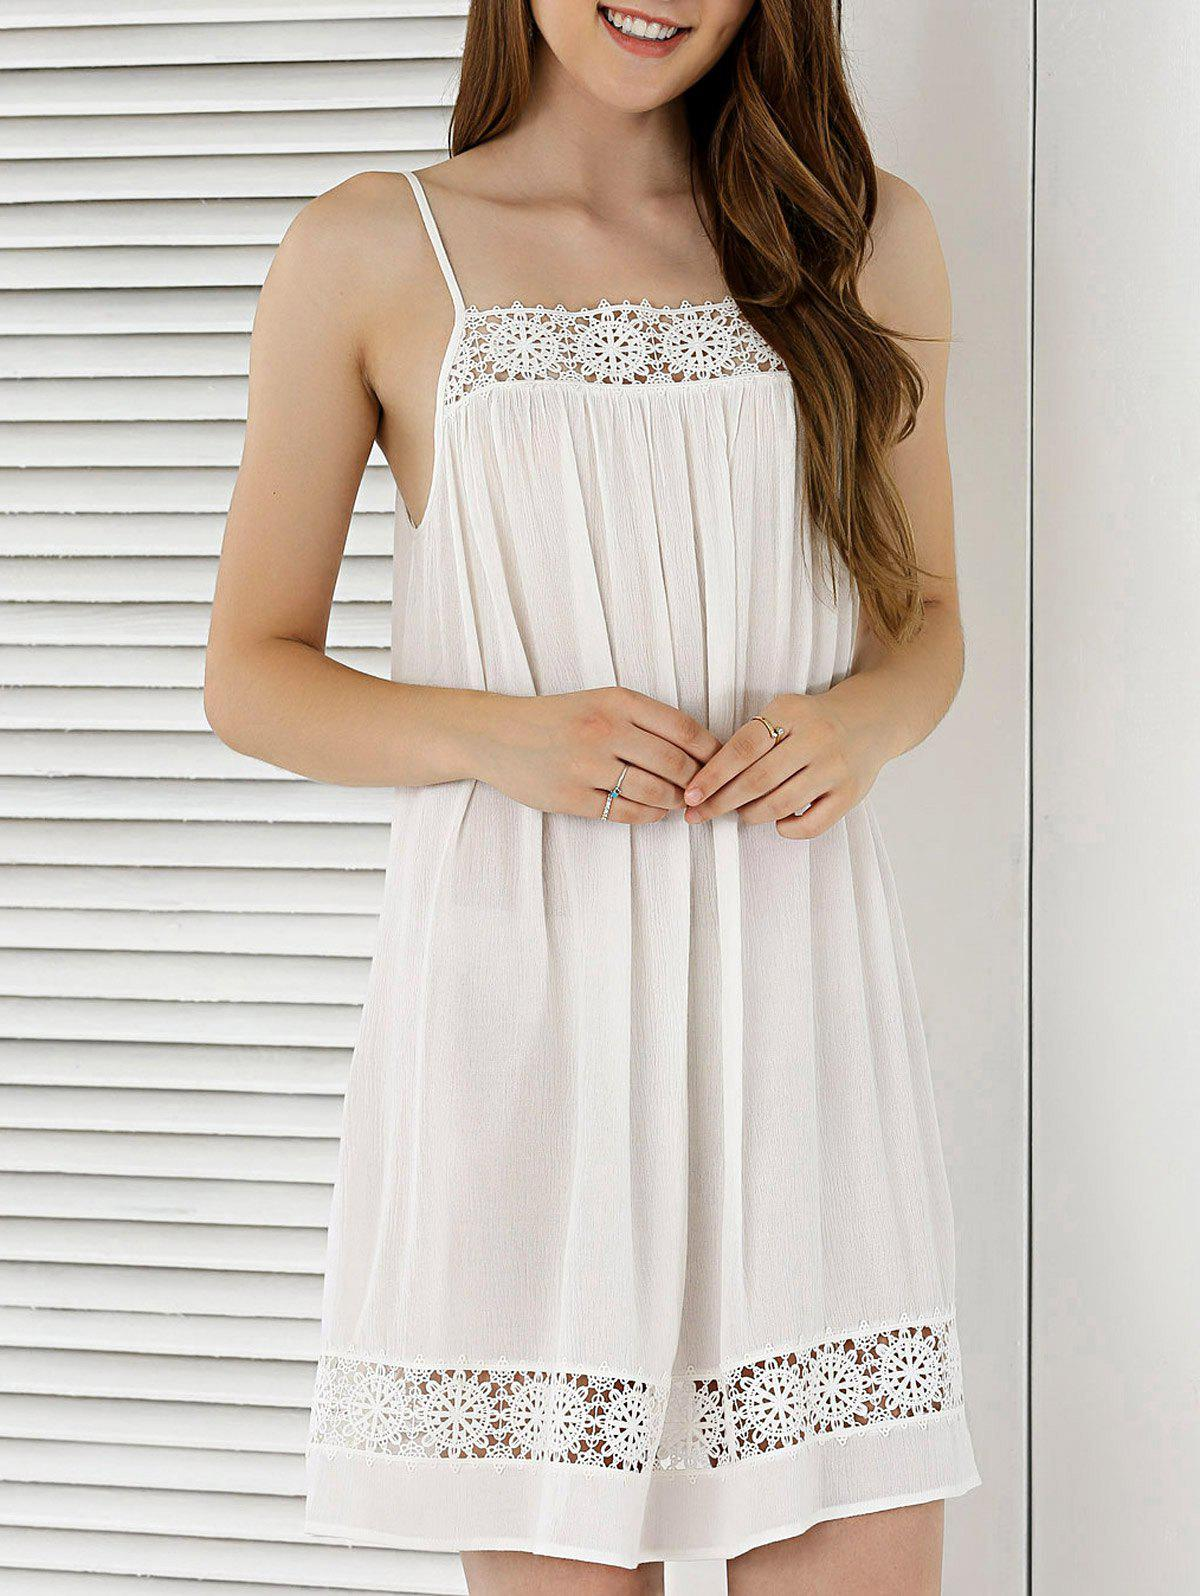 Spaghetti Strap Hollow Out Summer Dress